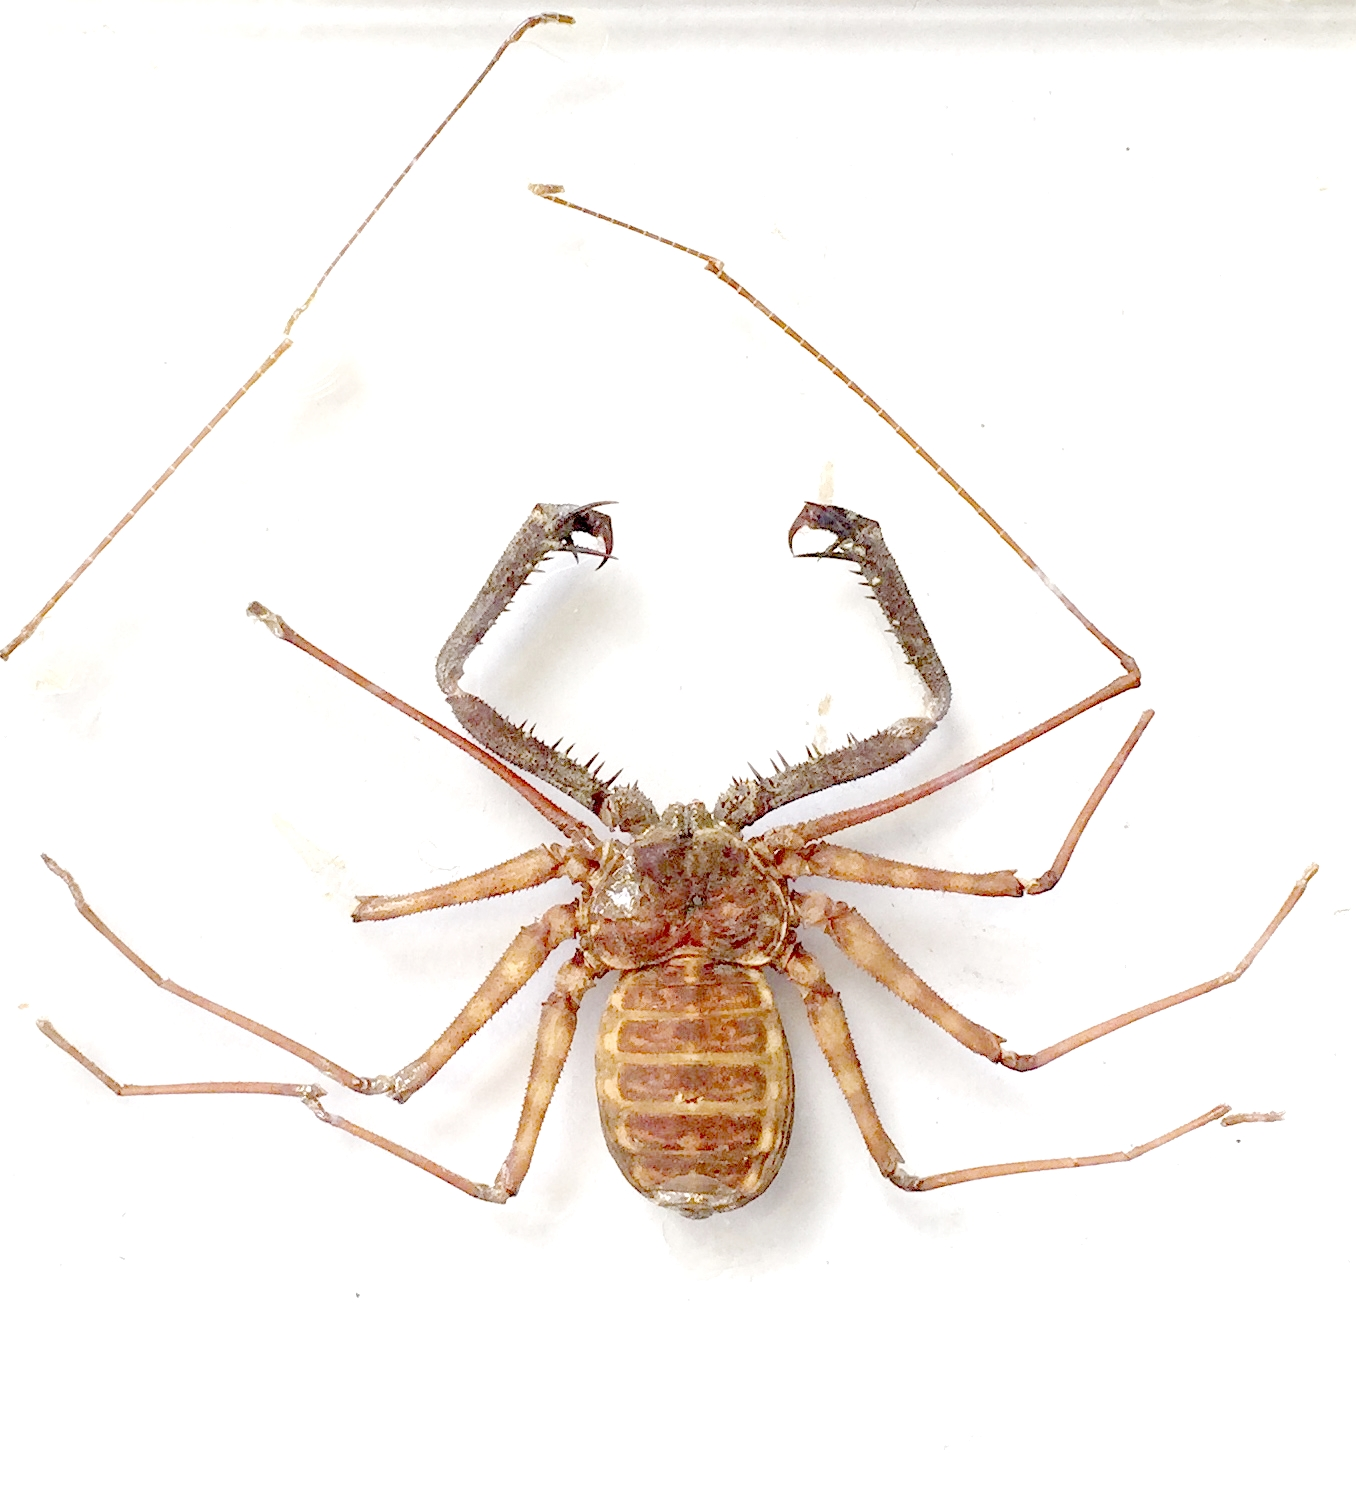 Specimen of the Week 254 : Tailless Whip Scorpion | UCL